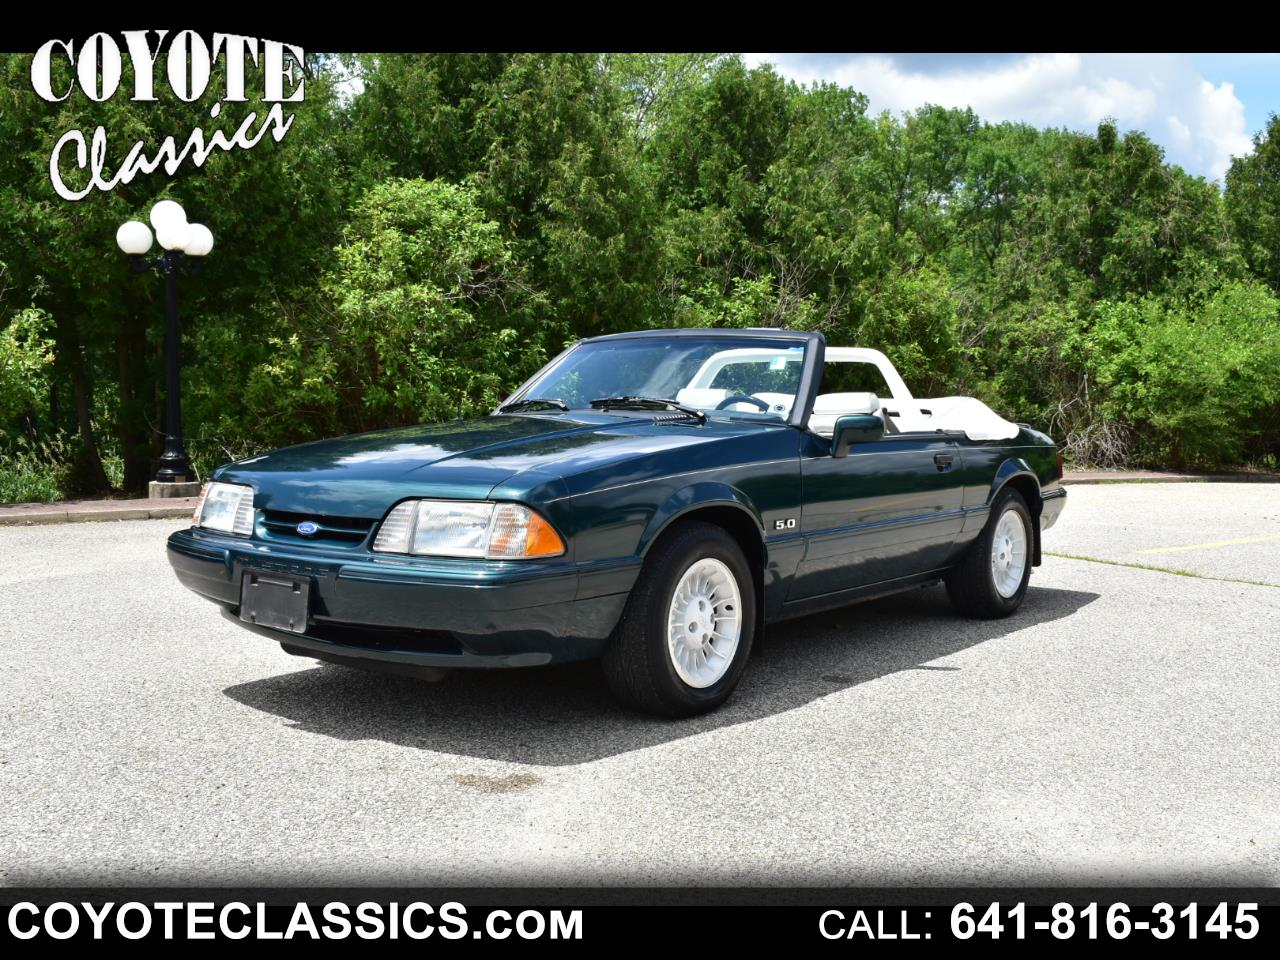 1990 Ford Mustang 2dr Convertible LX Auto